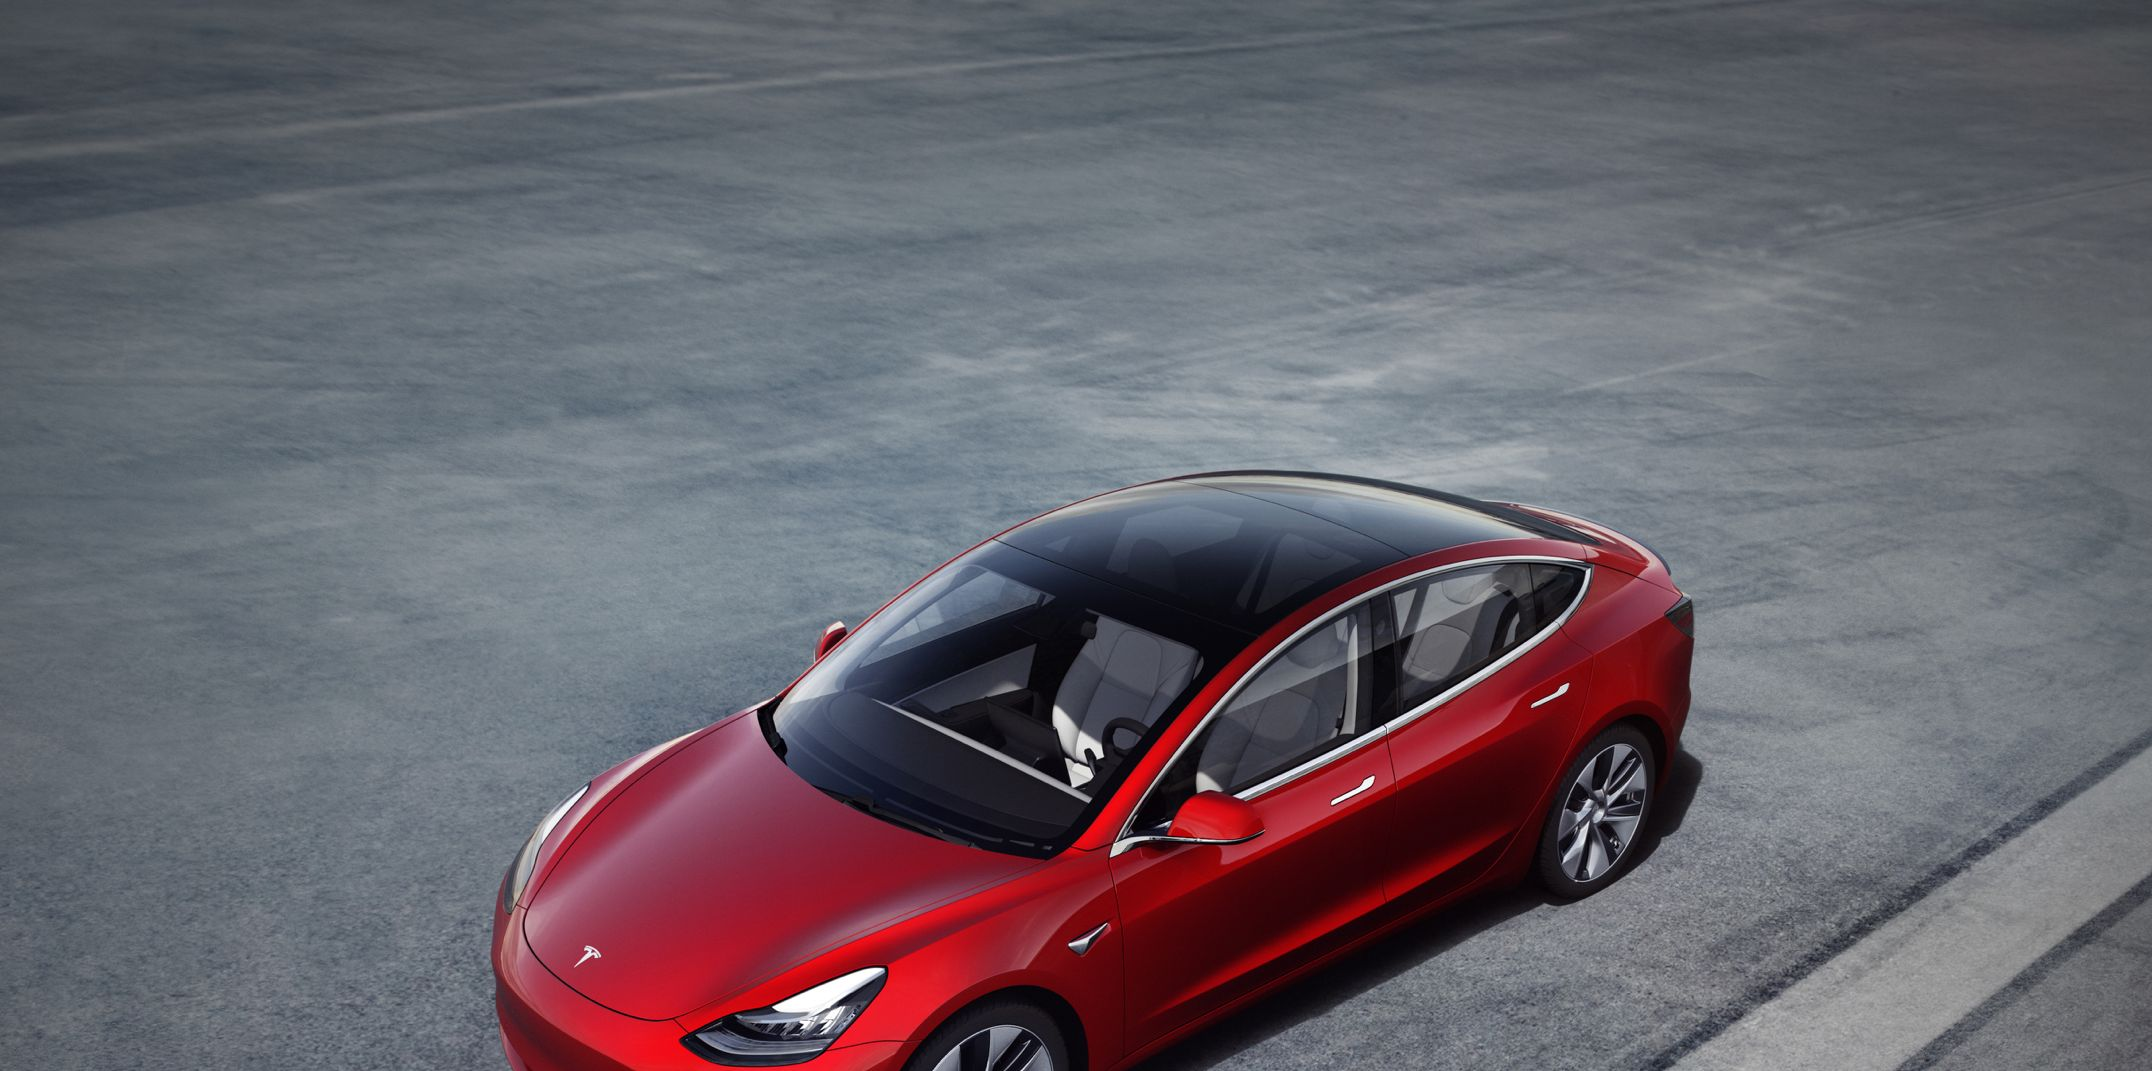 Longer-Range Tesla Model 3 Coming Soon to China: Report